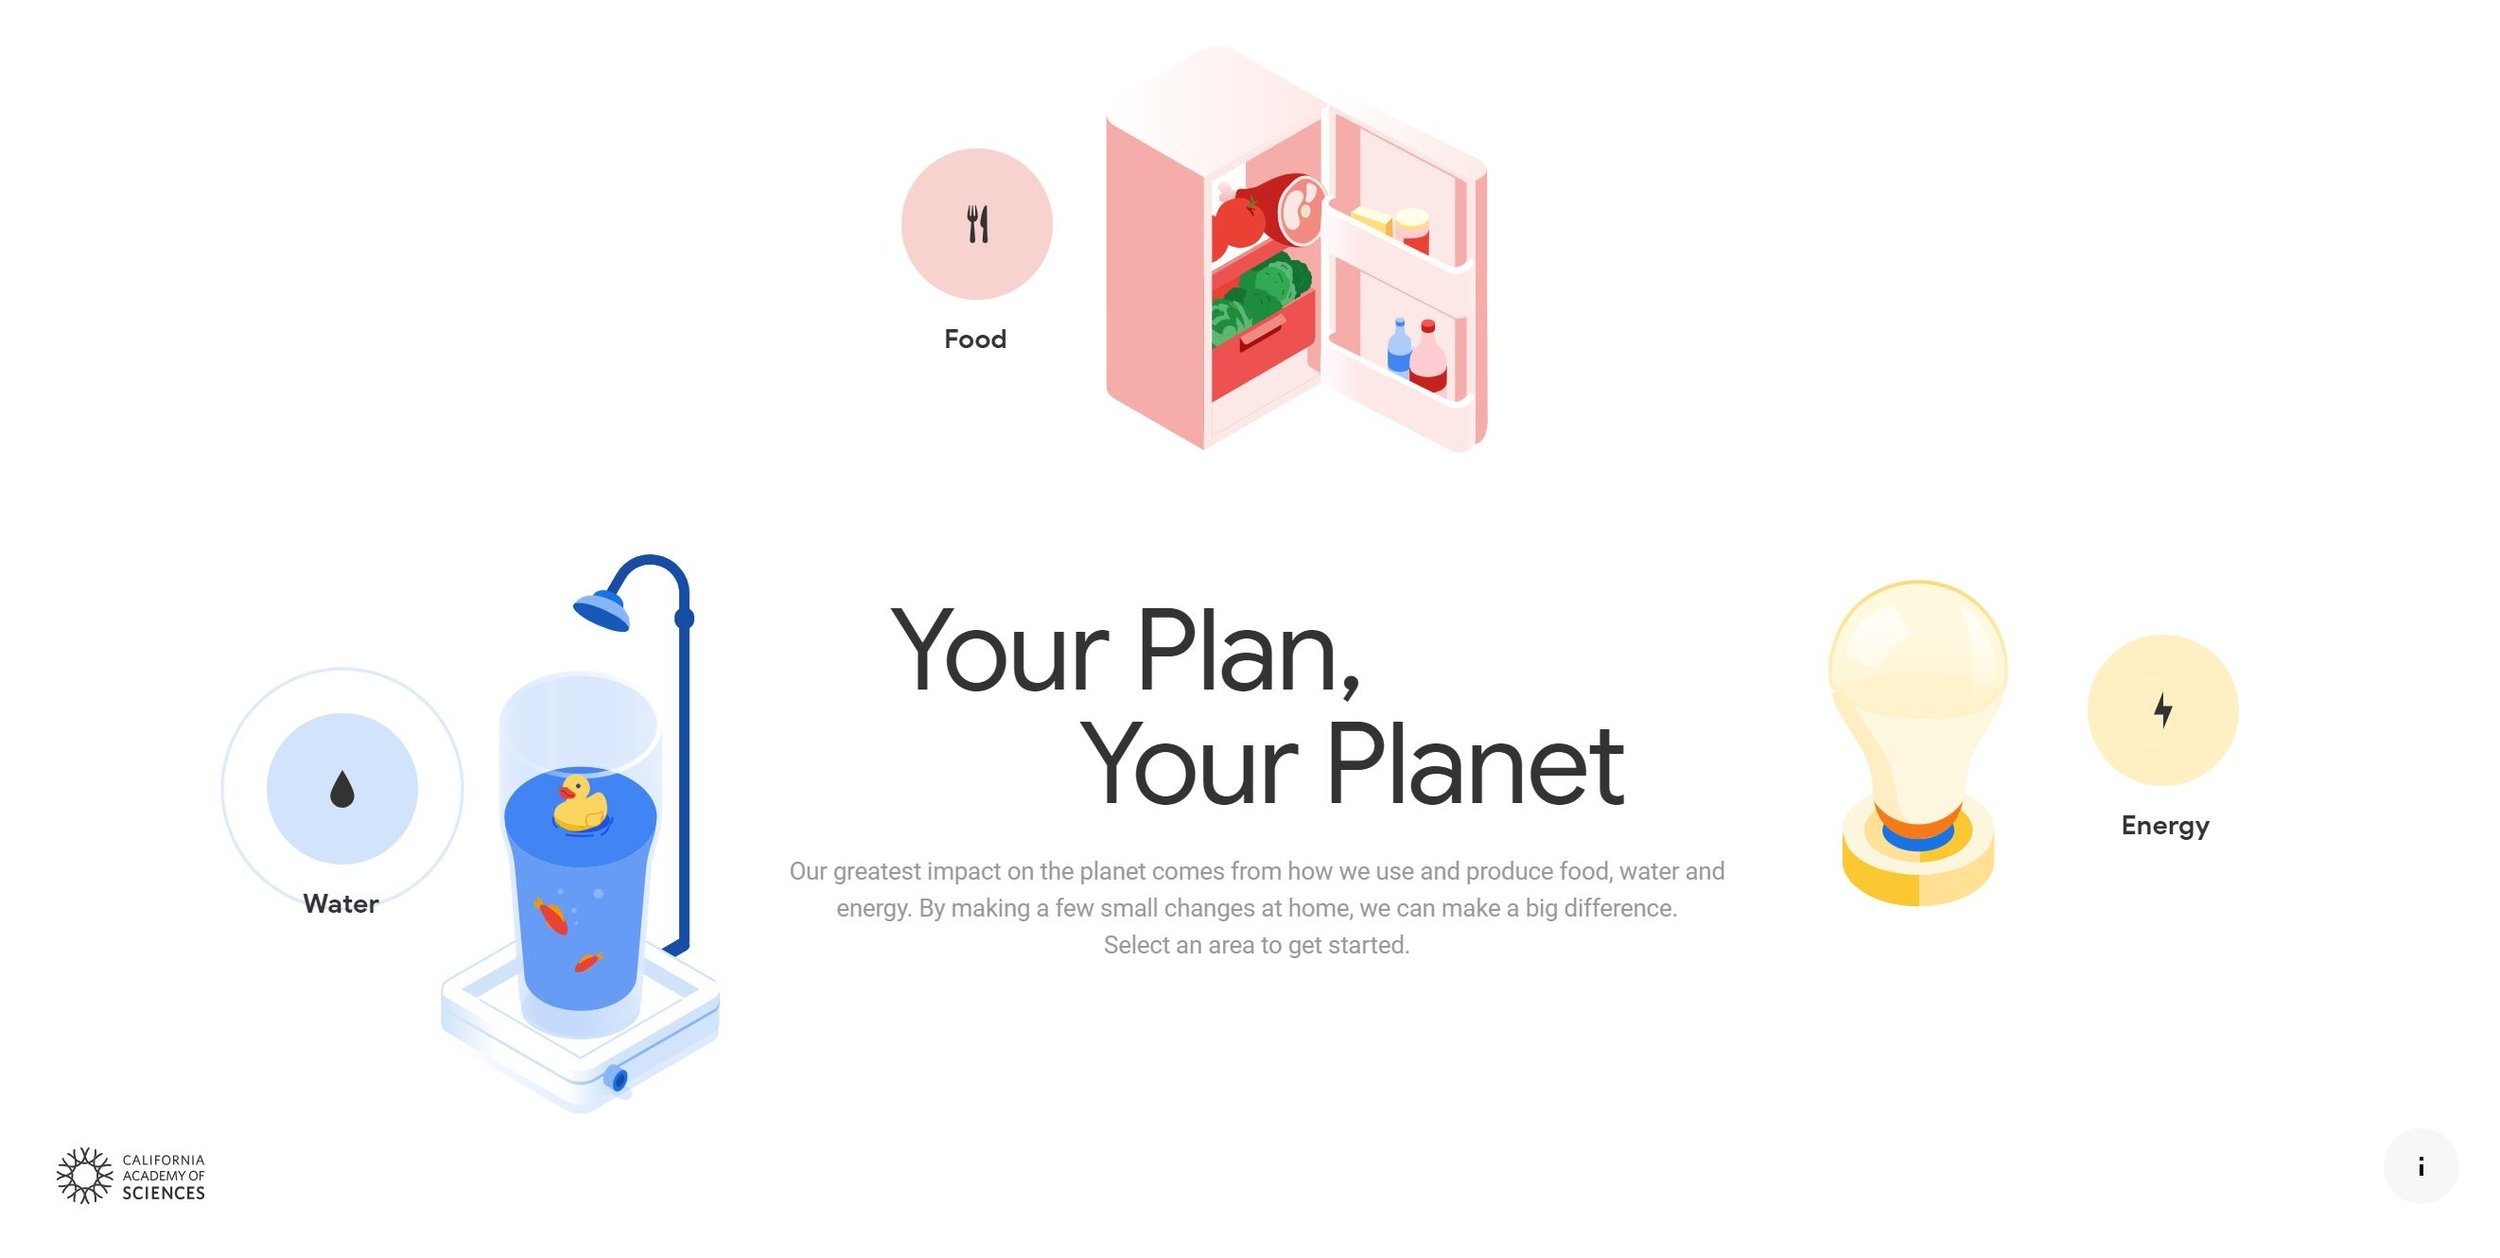 Your Plan, Your Planet Homepage from Google